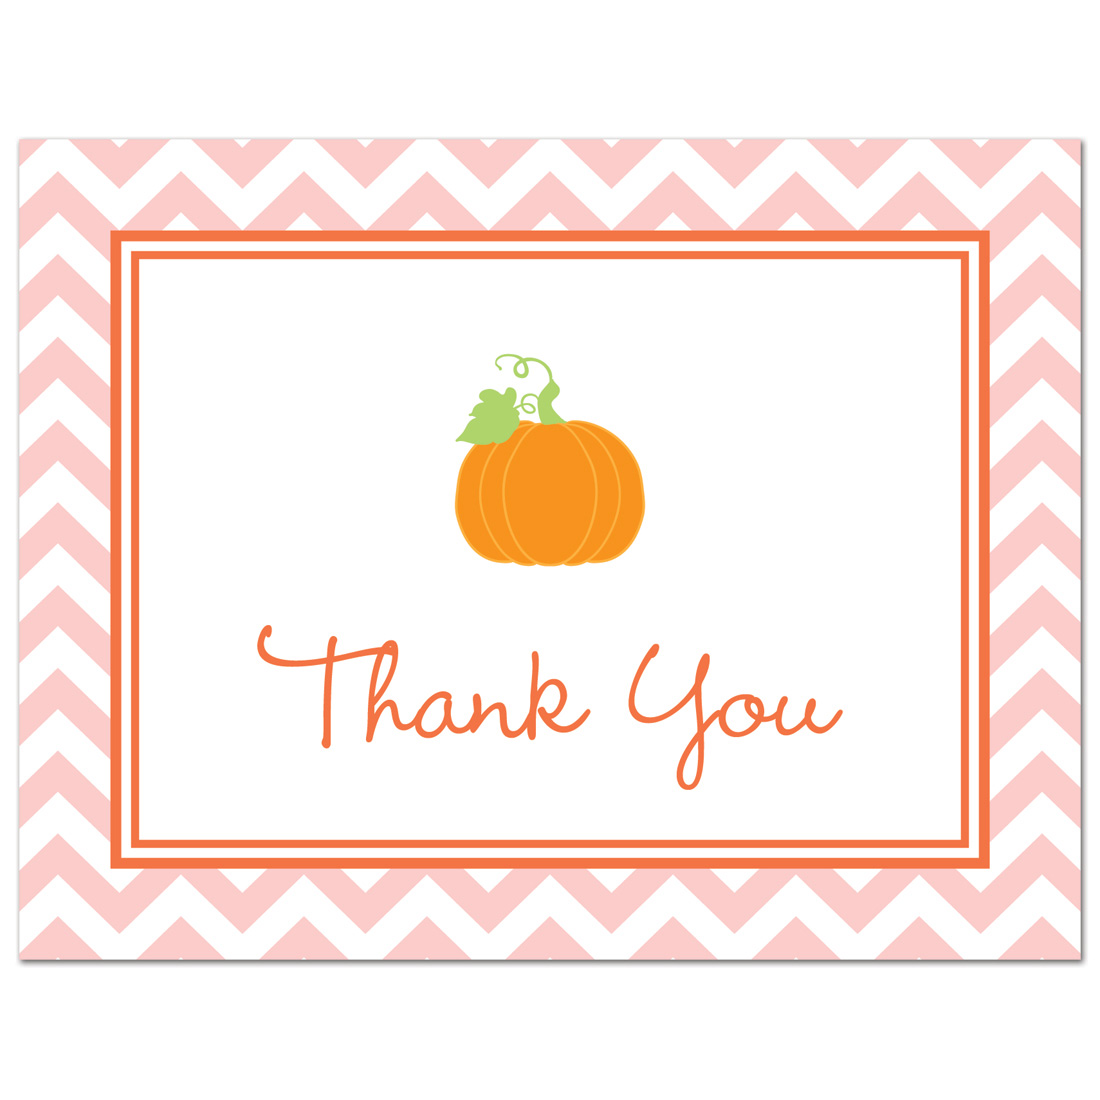 Pink Chevron Pumpkin Thank You Cards and Envelopes - 50 count